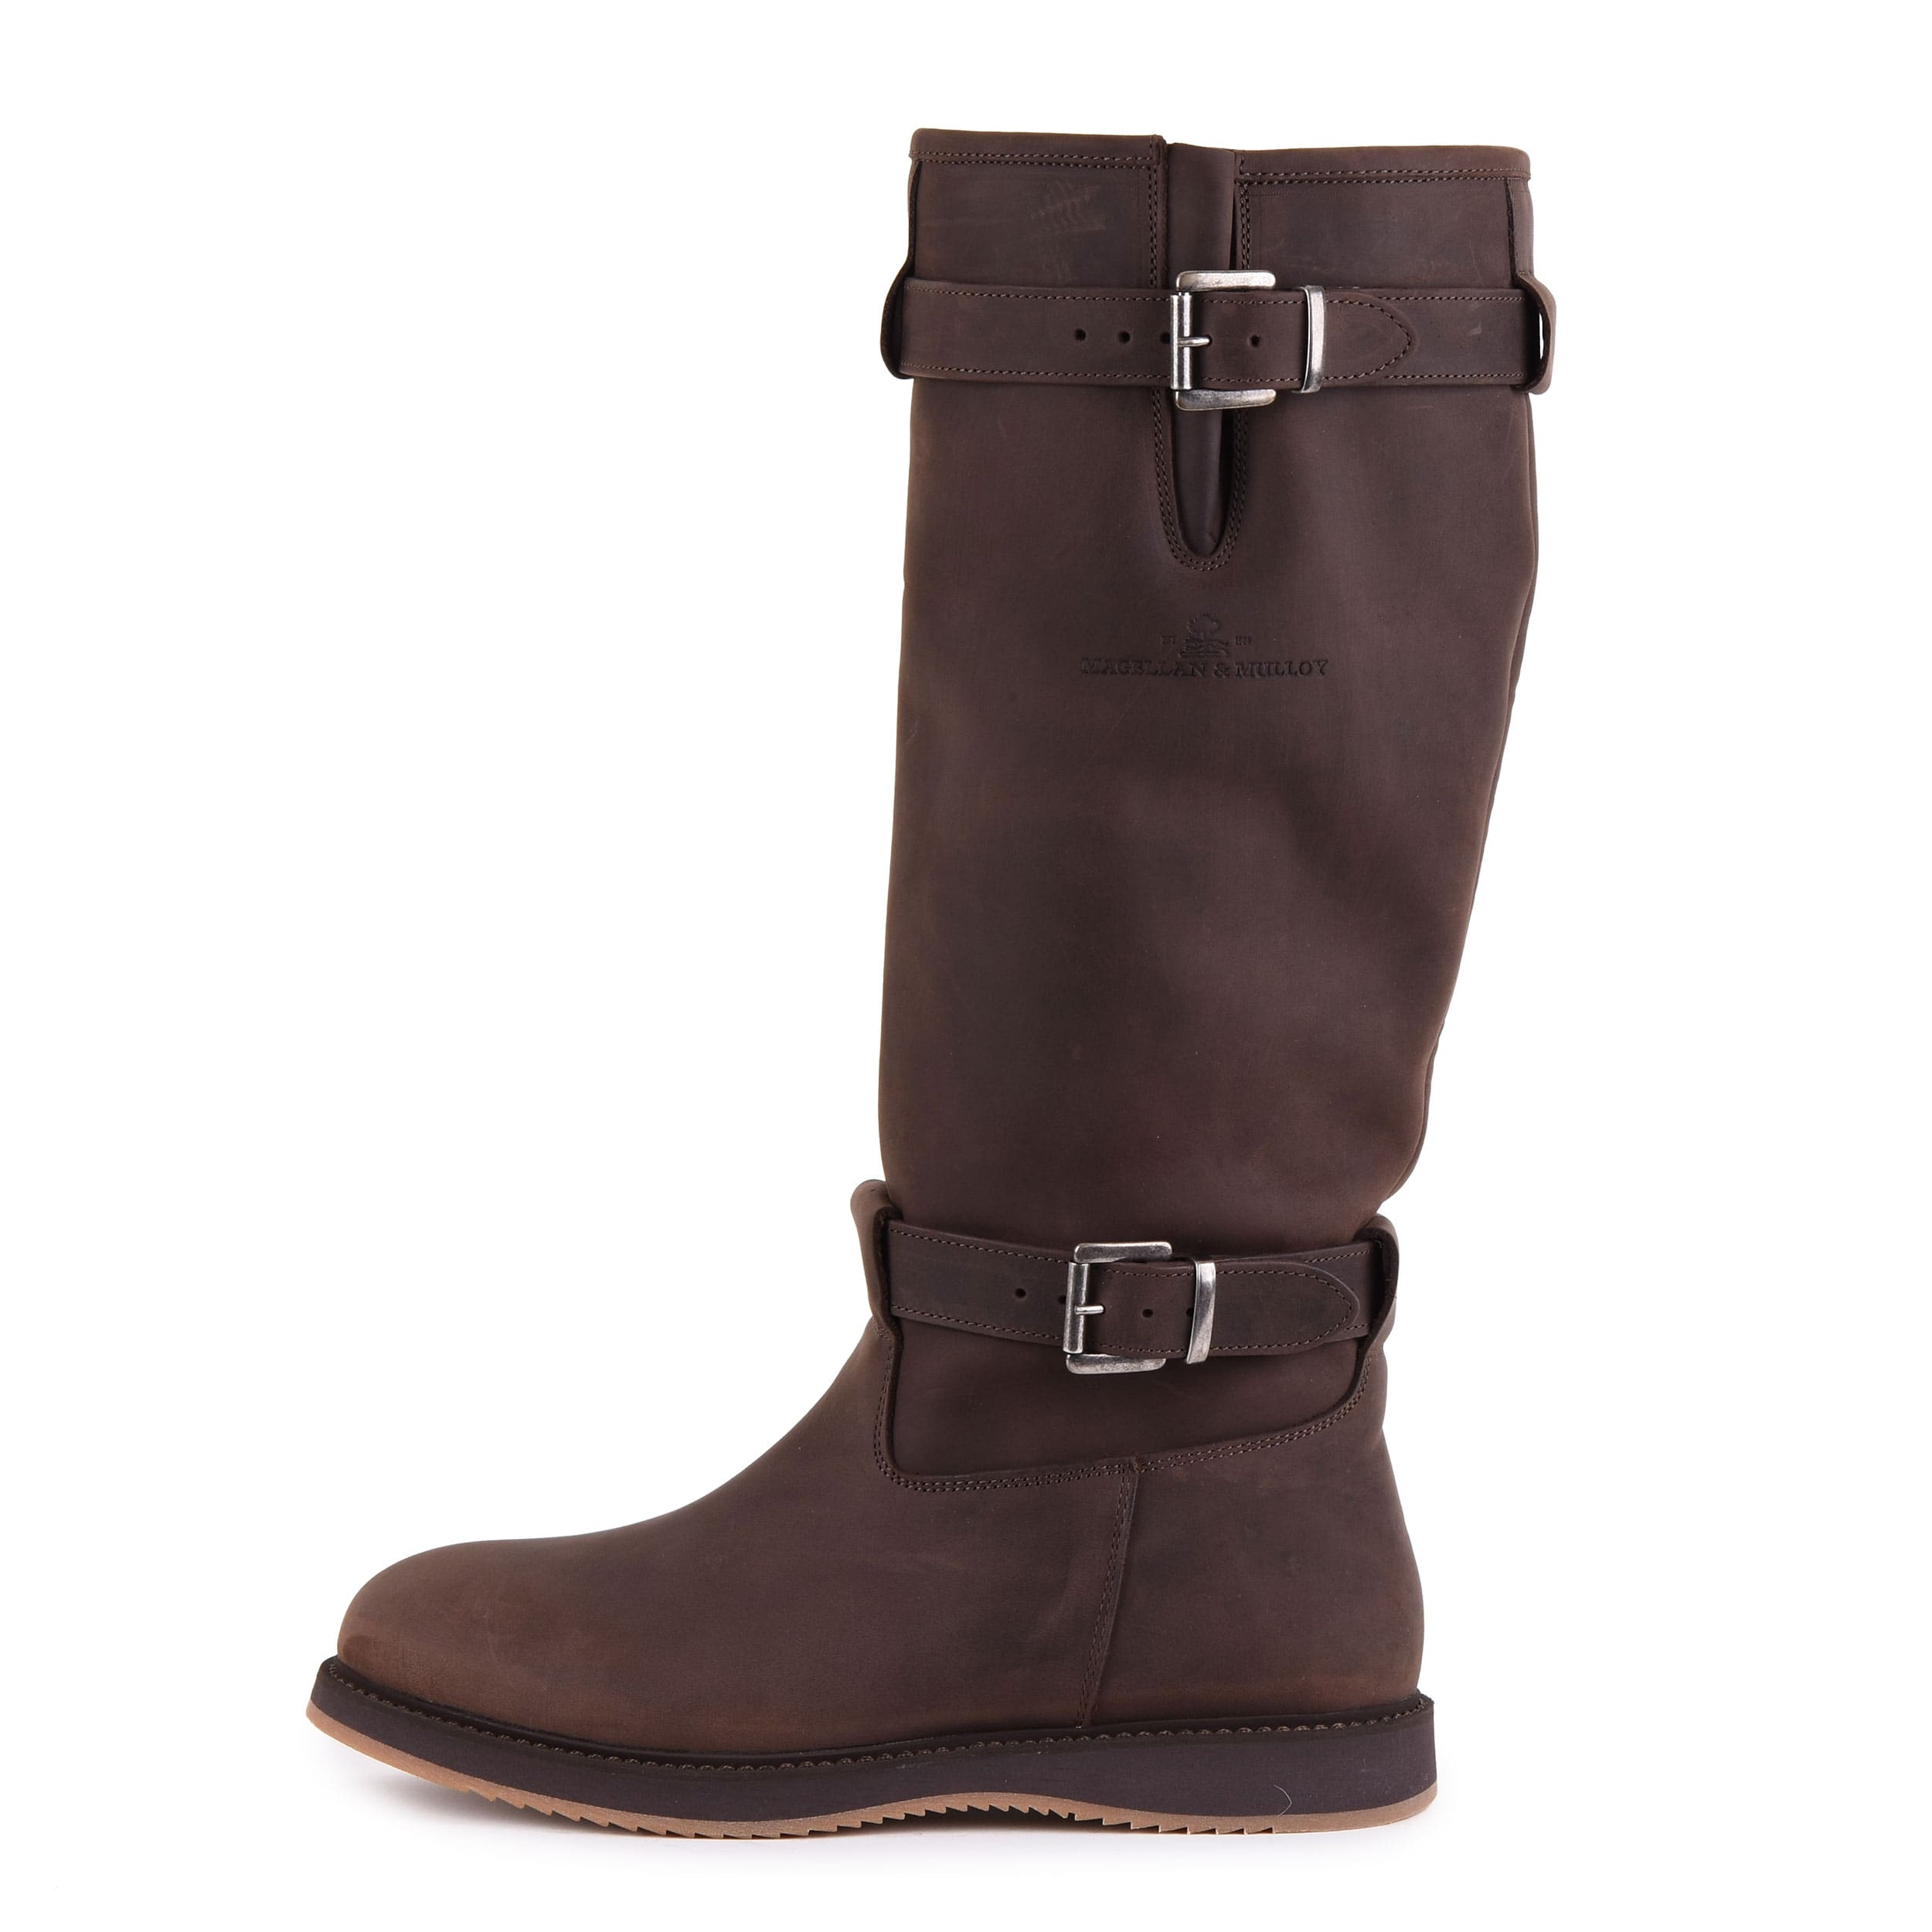 Magellan & Mulloy outdoor boot